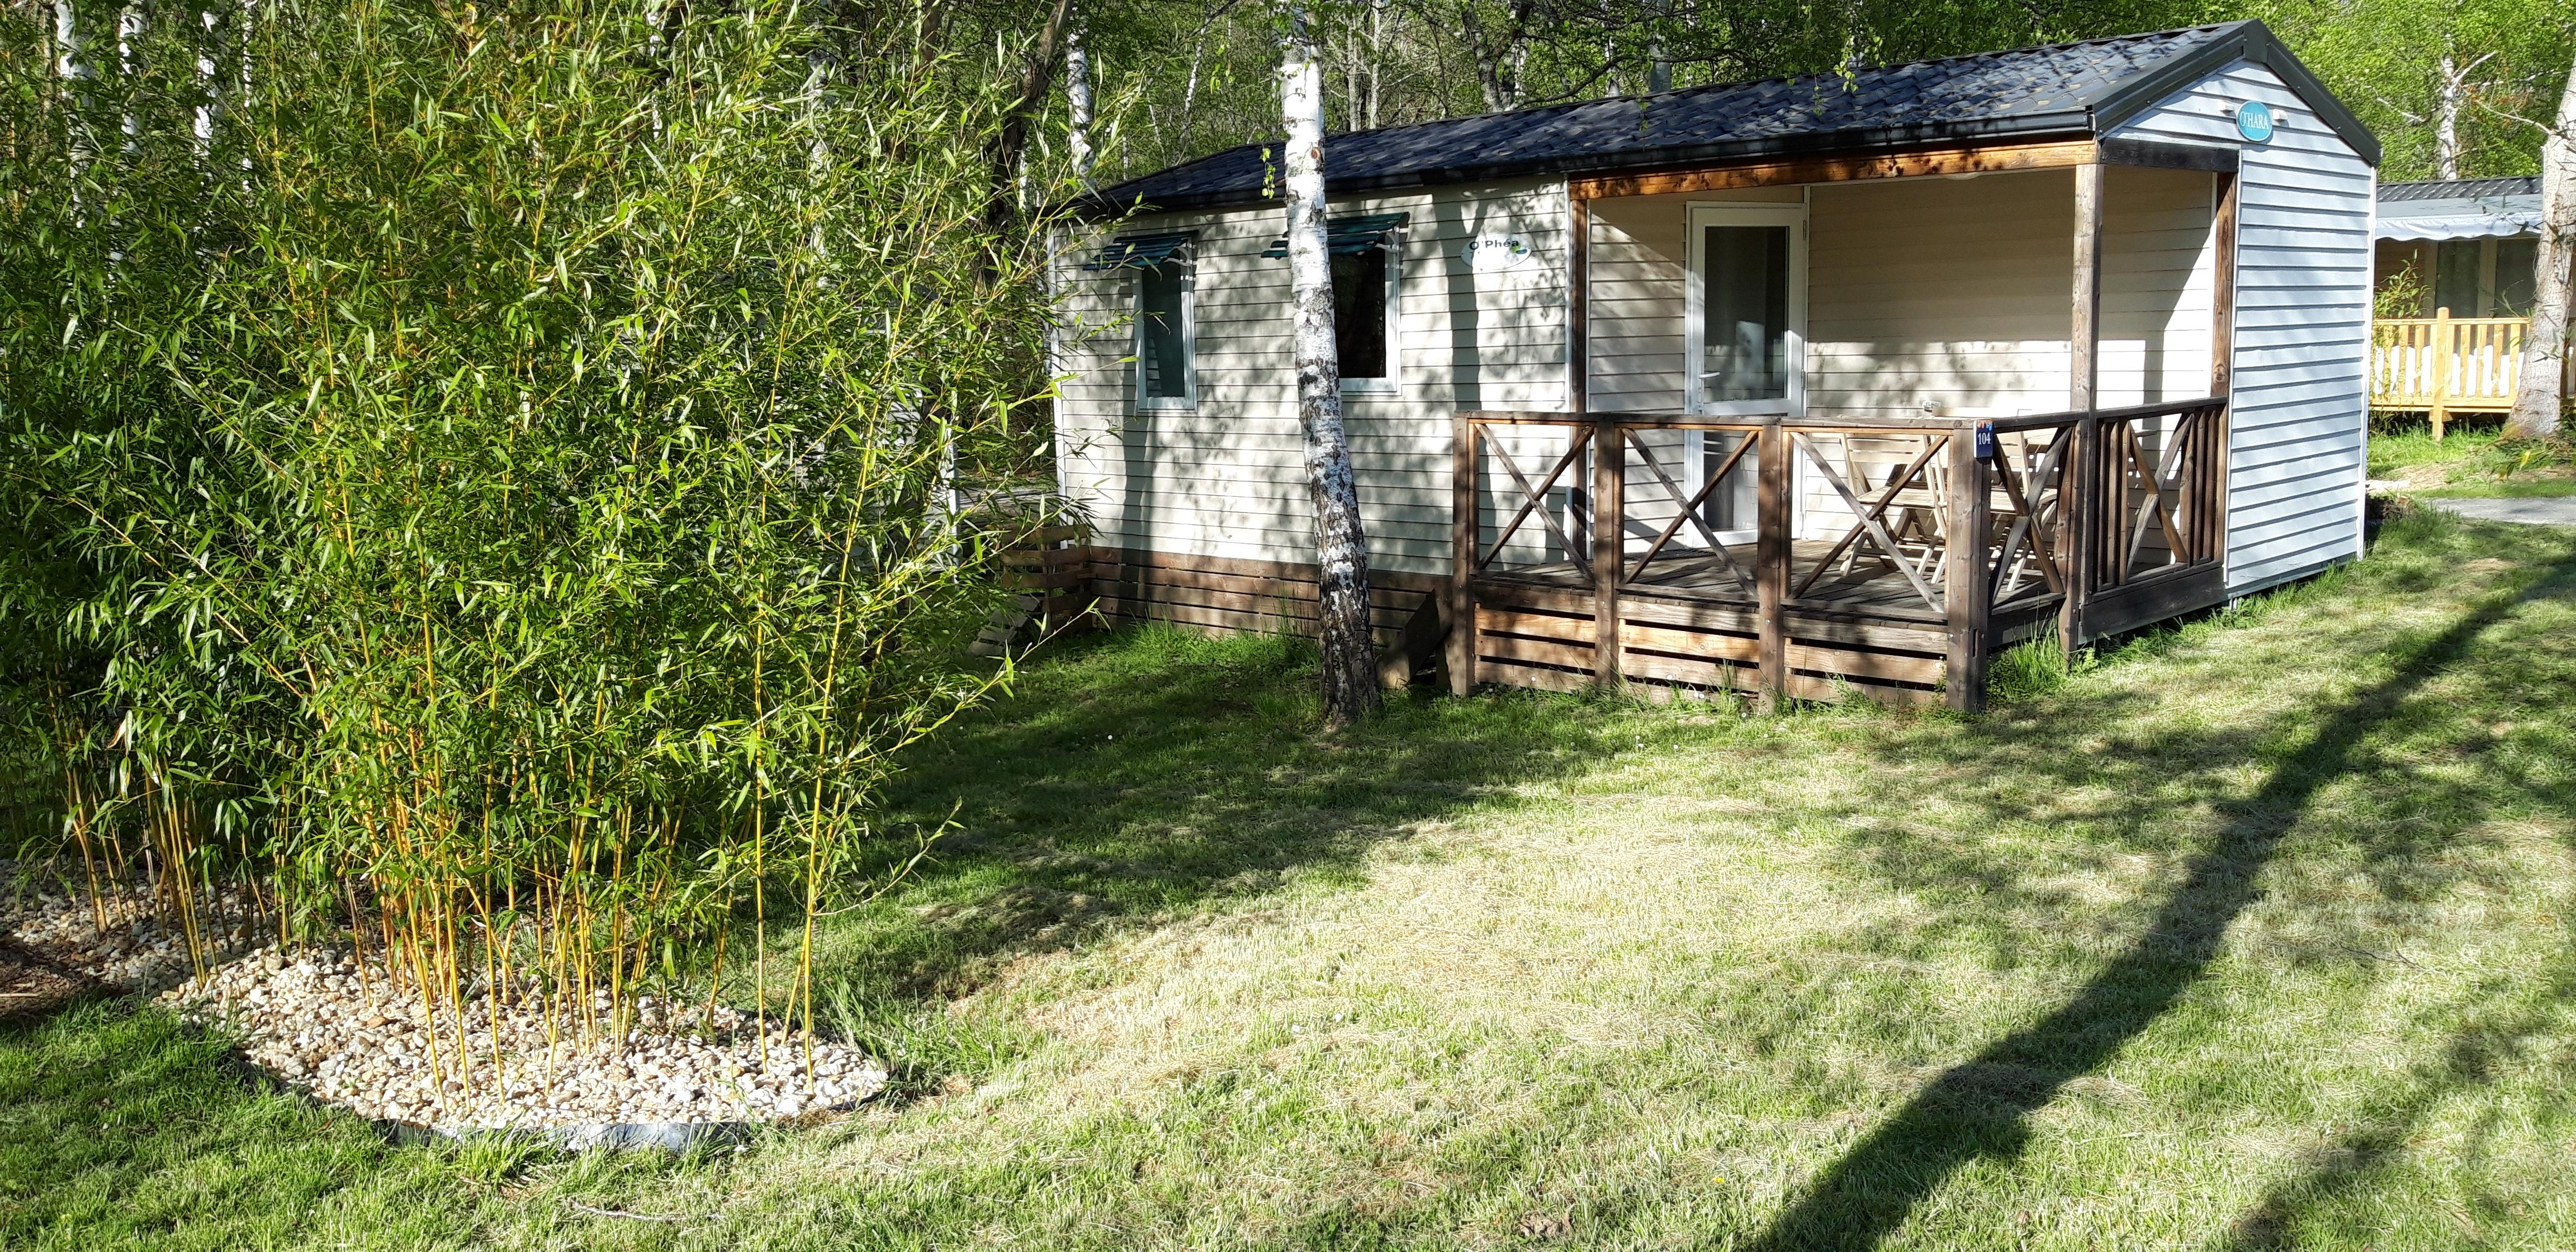 Location - Mobilhome Confort (2 Chambres) - Flower Camping Les Gorges de l'Aveyron